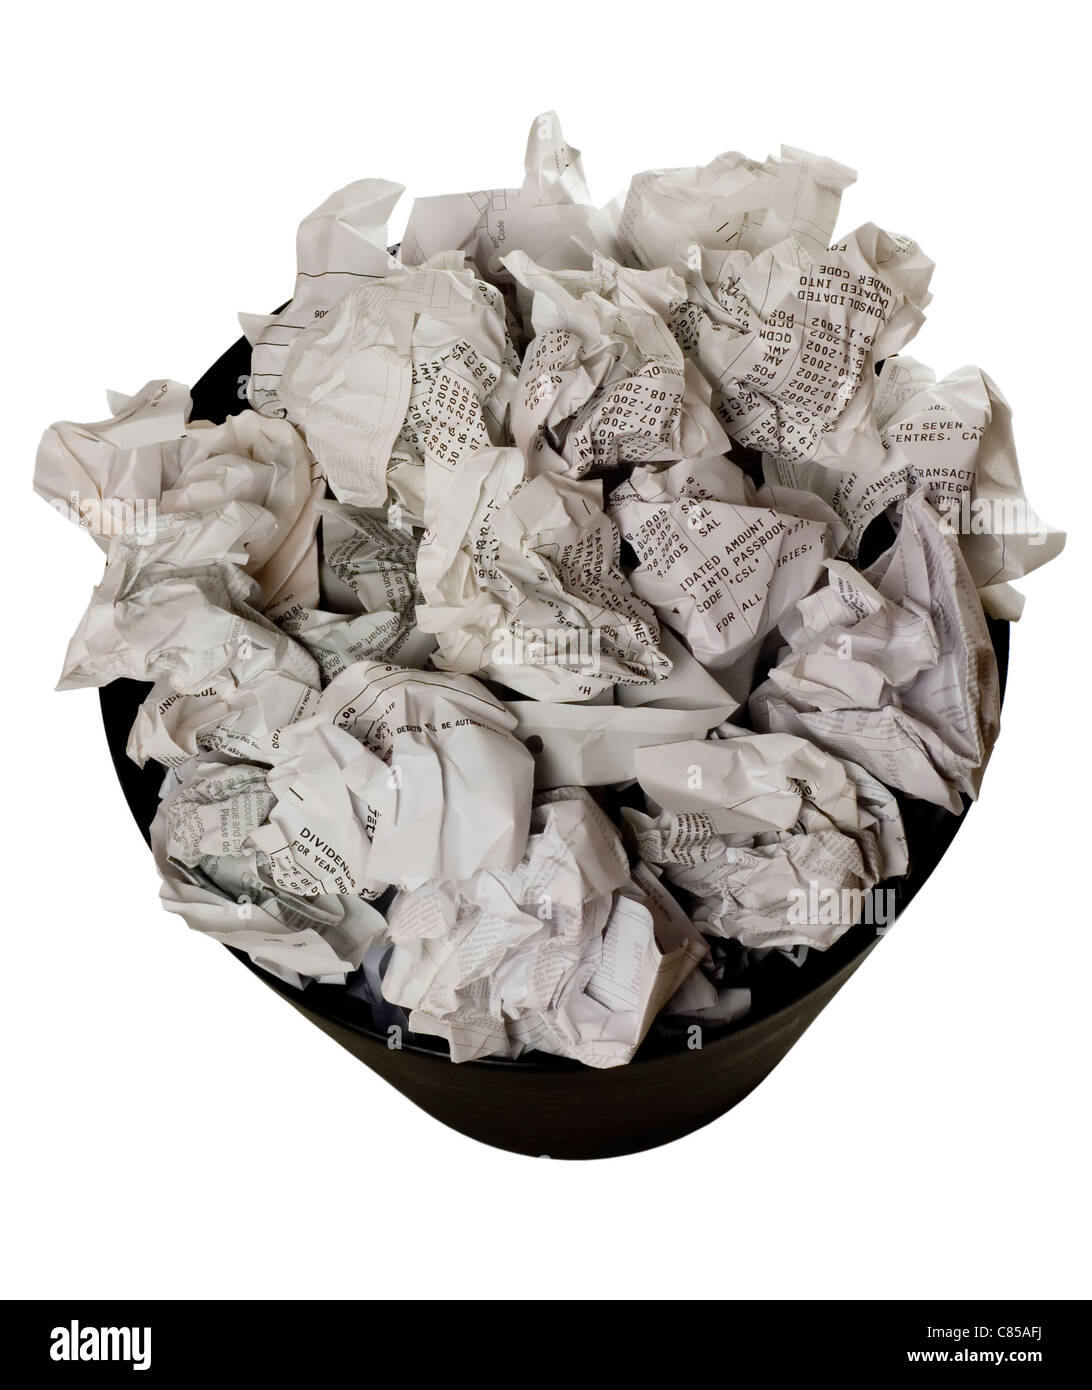 Wastepaper basket full of crumpled paper isolated on white background - Stock Image